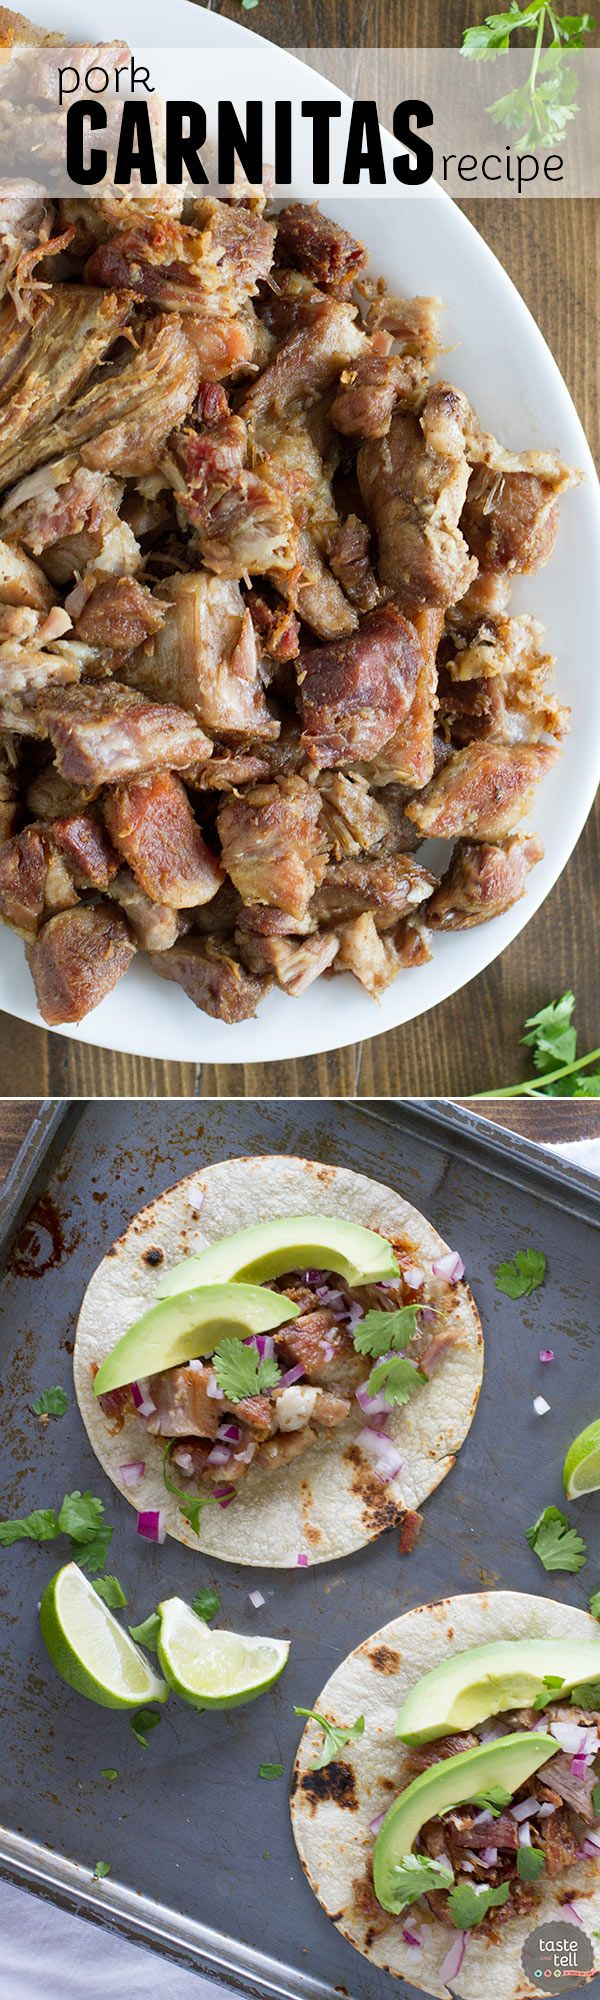 Great food doesn't have to be complicated - this Pork Carnitas Recipe is so simple but it will blow your socks off. Serve the carnitas in tacos, burritos, enchiladas, or however your heart desires!